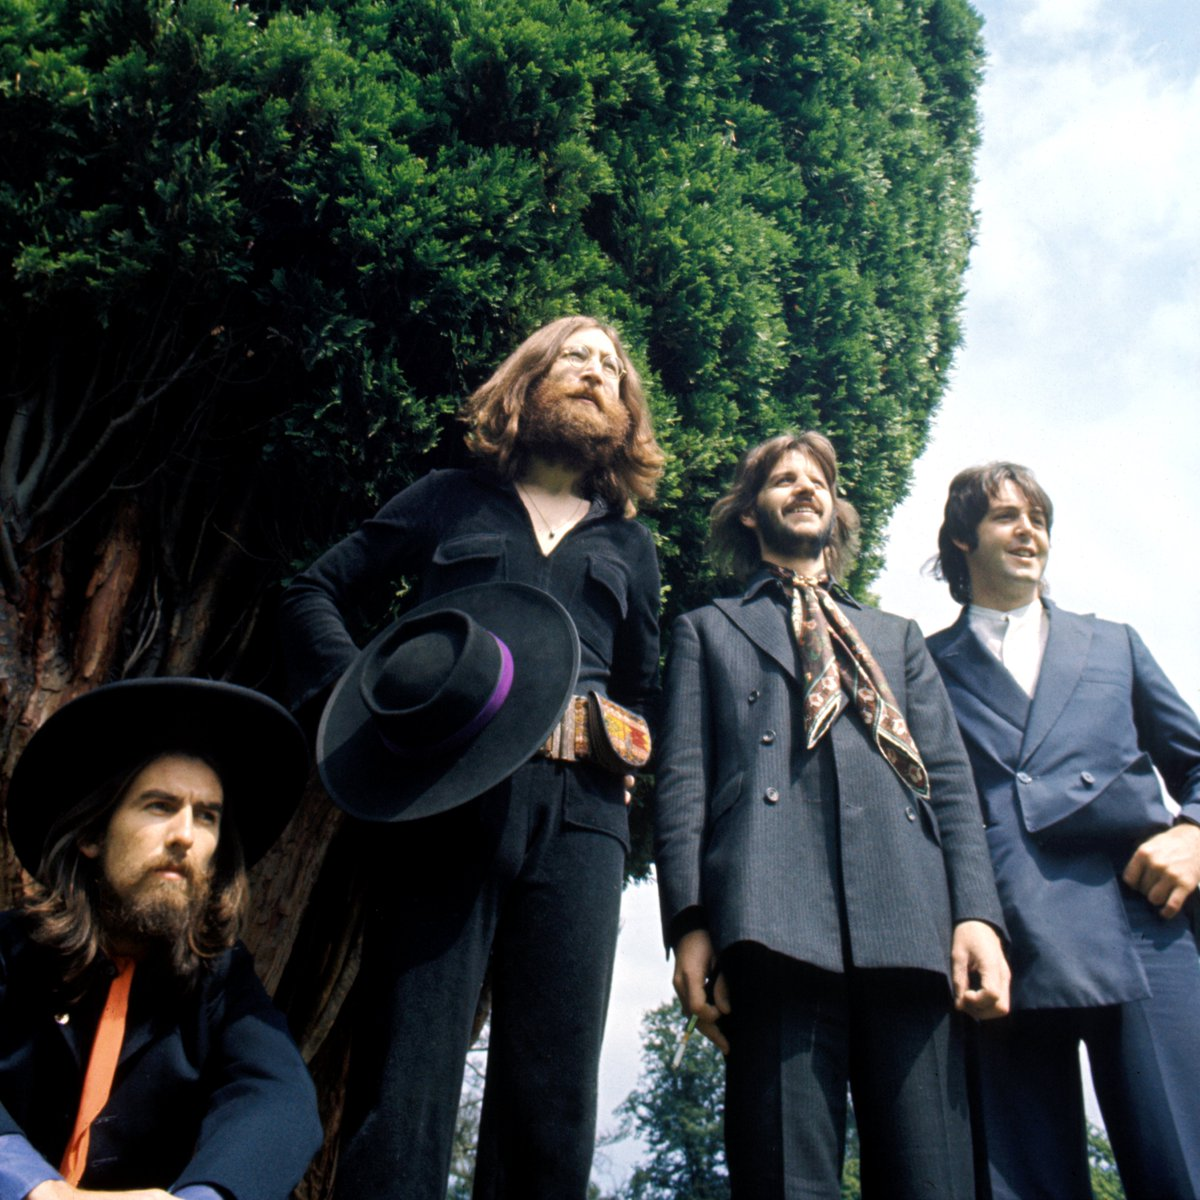 Listen to the 2019 mix of the @GeorgeHarrison-penned 'Something', plus an unreleased instrumental and an early demo of the song, taken from the forthcoming Abbey Road Anniversary Releases: thebeatles.lnk.to/Something2019 #AbbeyRoad